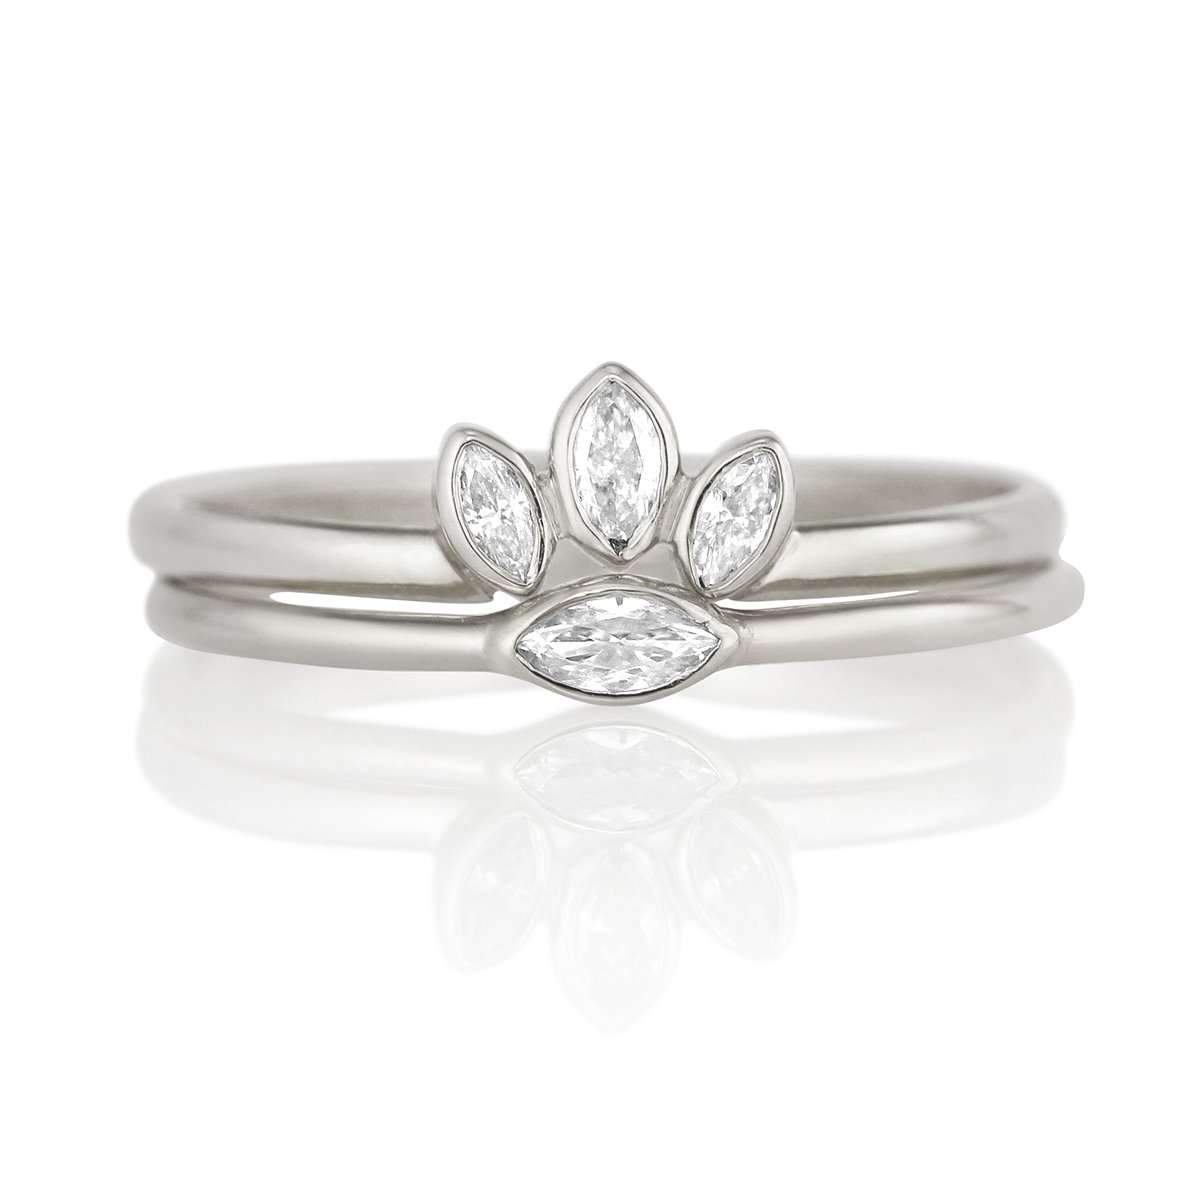 Petite Marquise Diamond Ring & Ring Enhancer Set-Alysha Whitfield